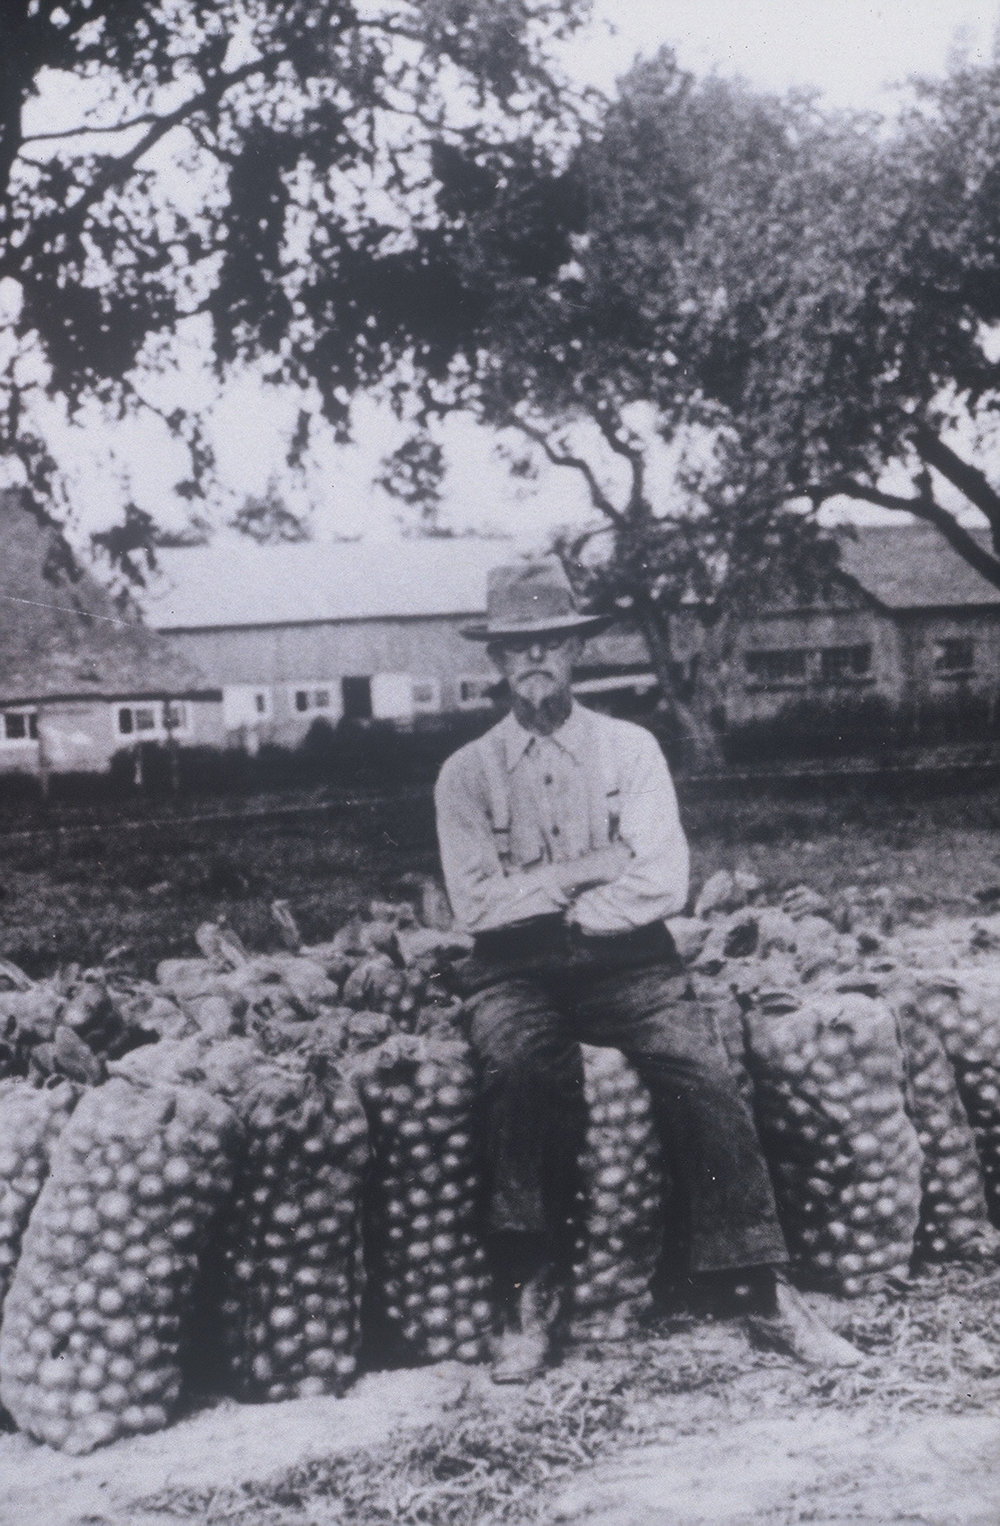 Mr Hepburn sitting on his onion harvest